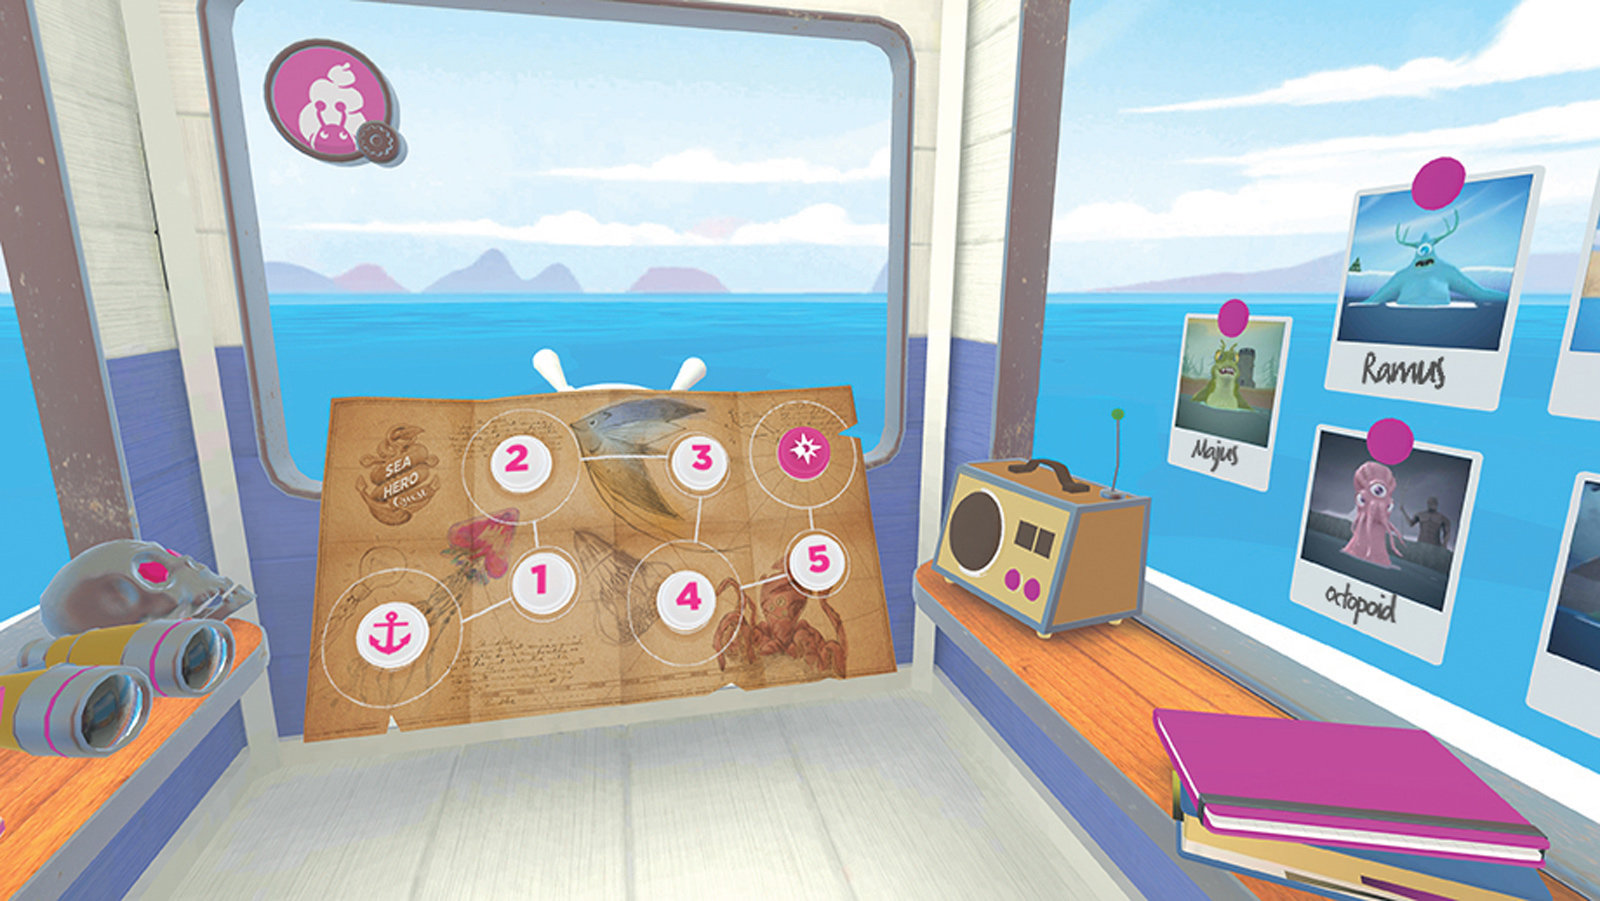 Sea Hero Quest is helping diagnose Alzheimer's